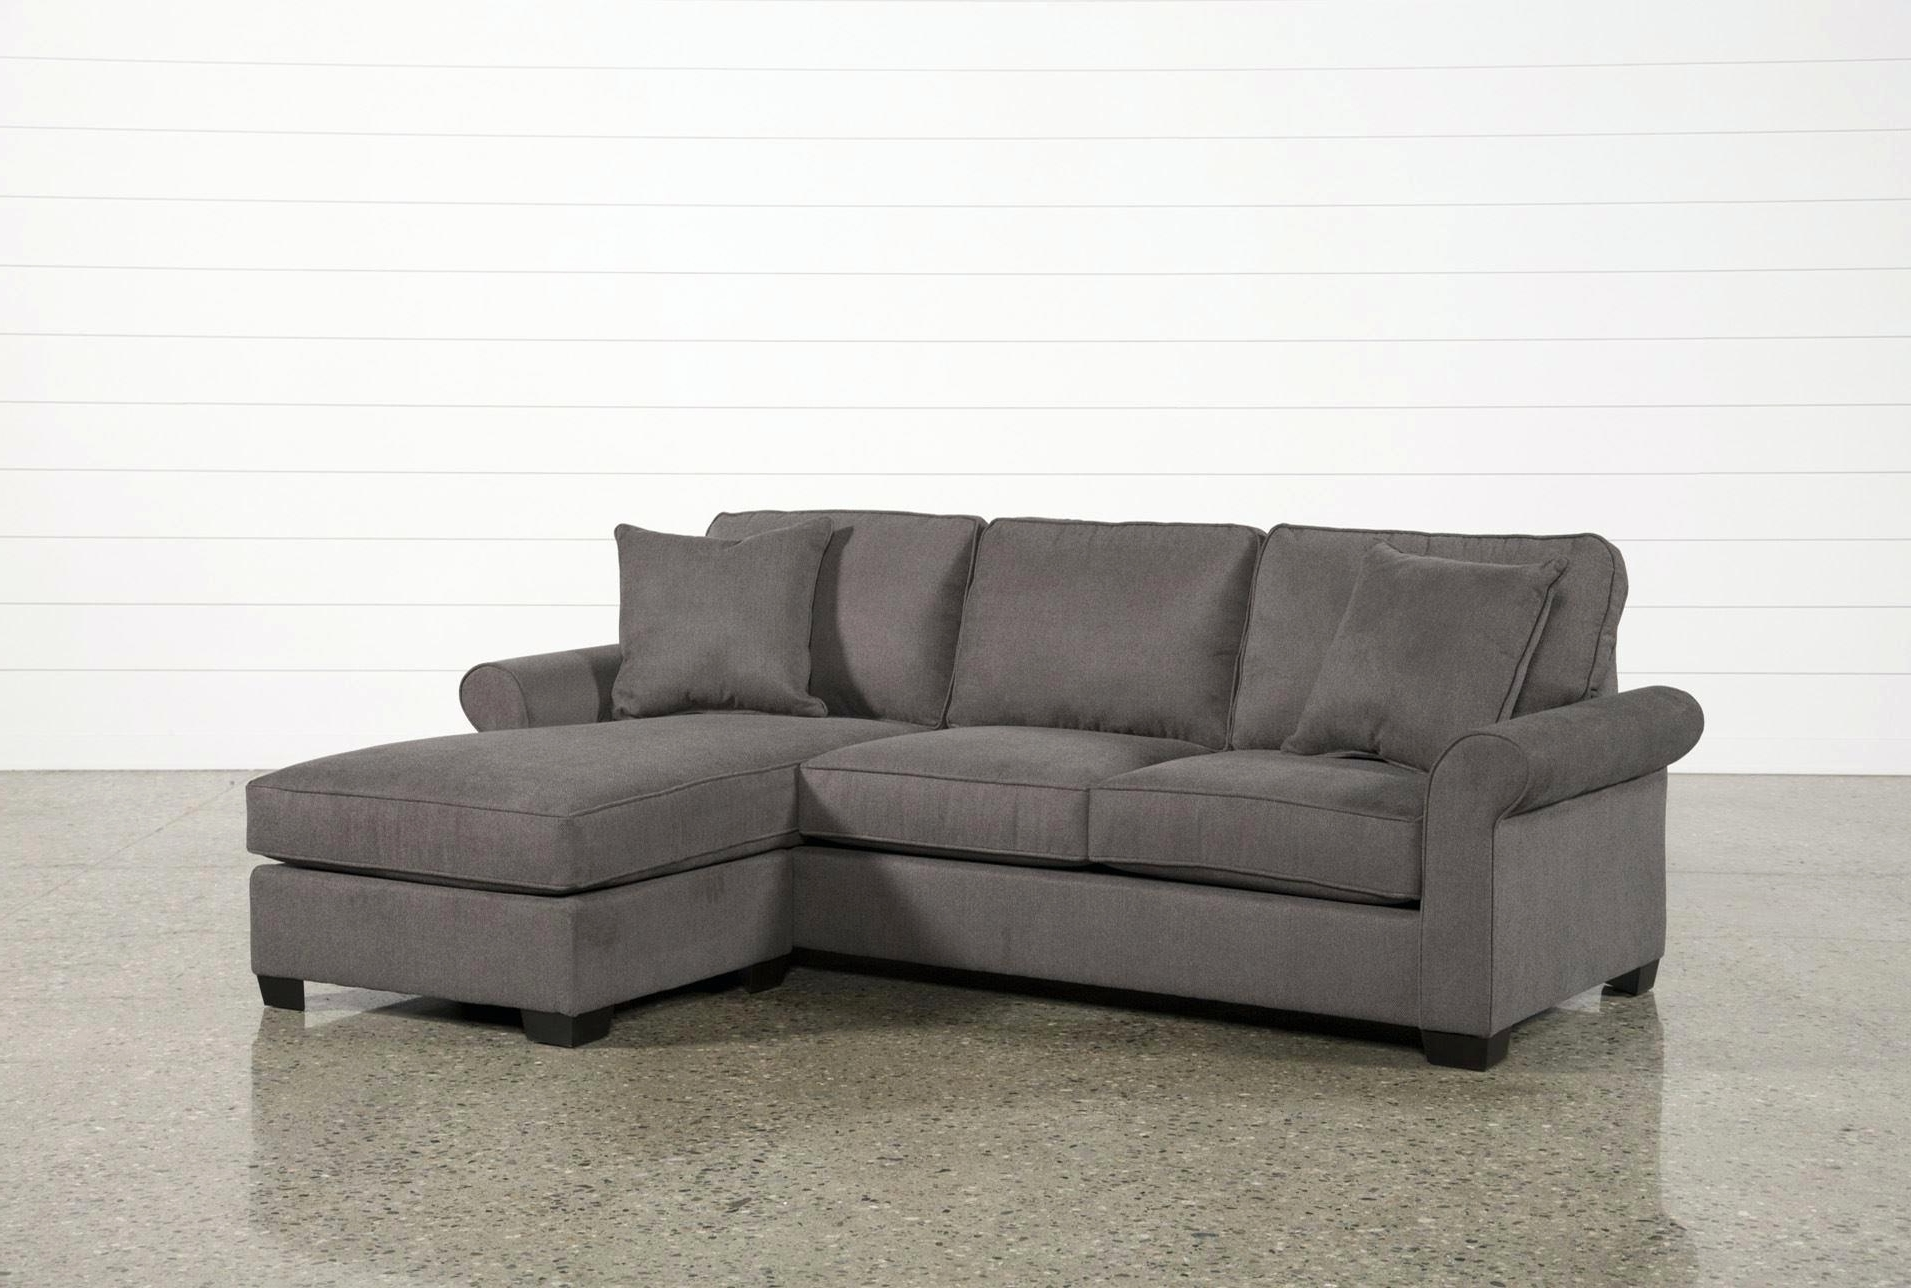 Current Chaise Couches Within Inspirational Double Chaise Sofa 2018 – Couches Ideas (View 4 of 15)